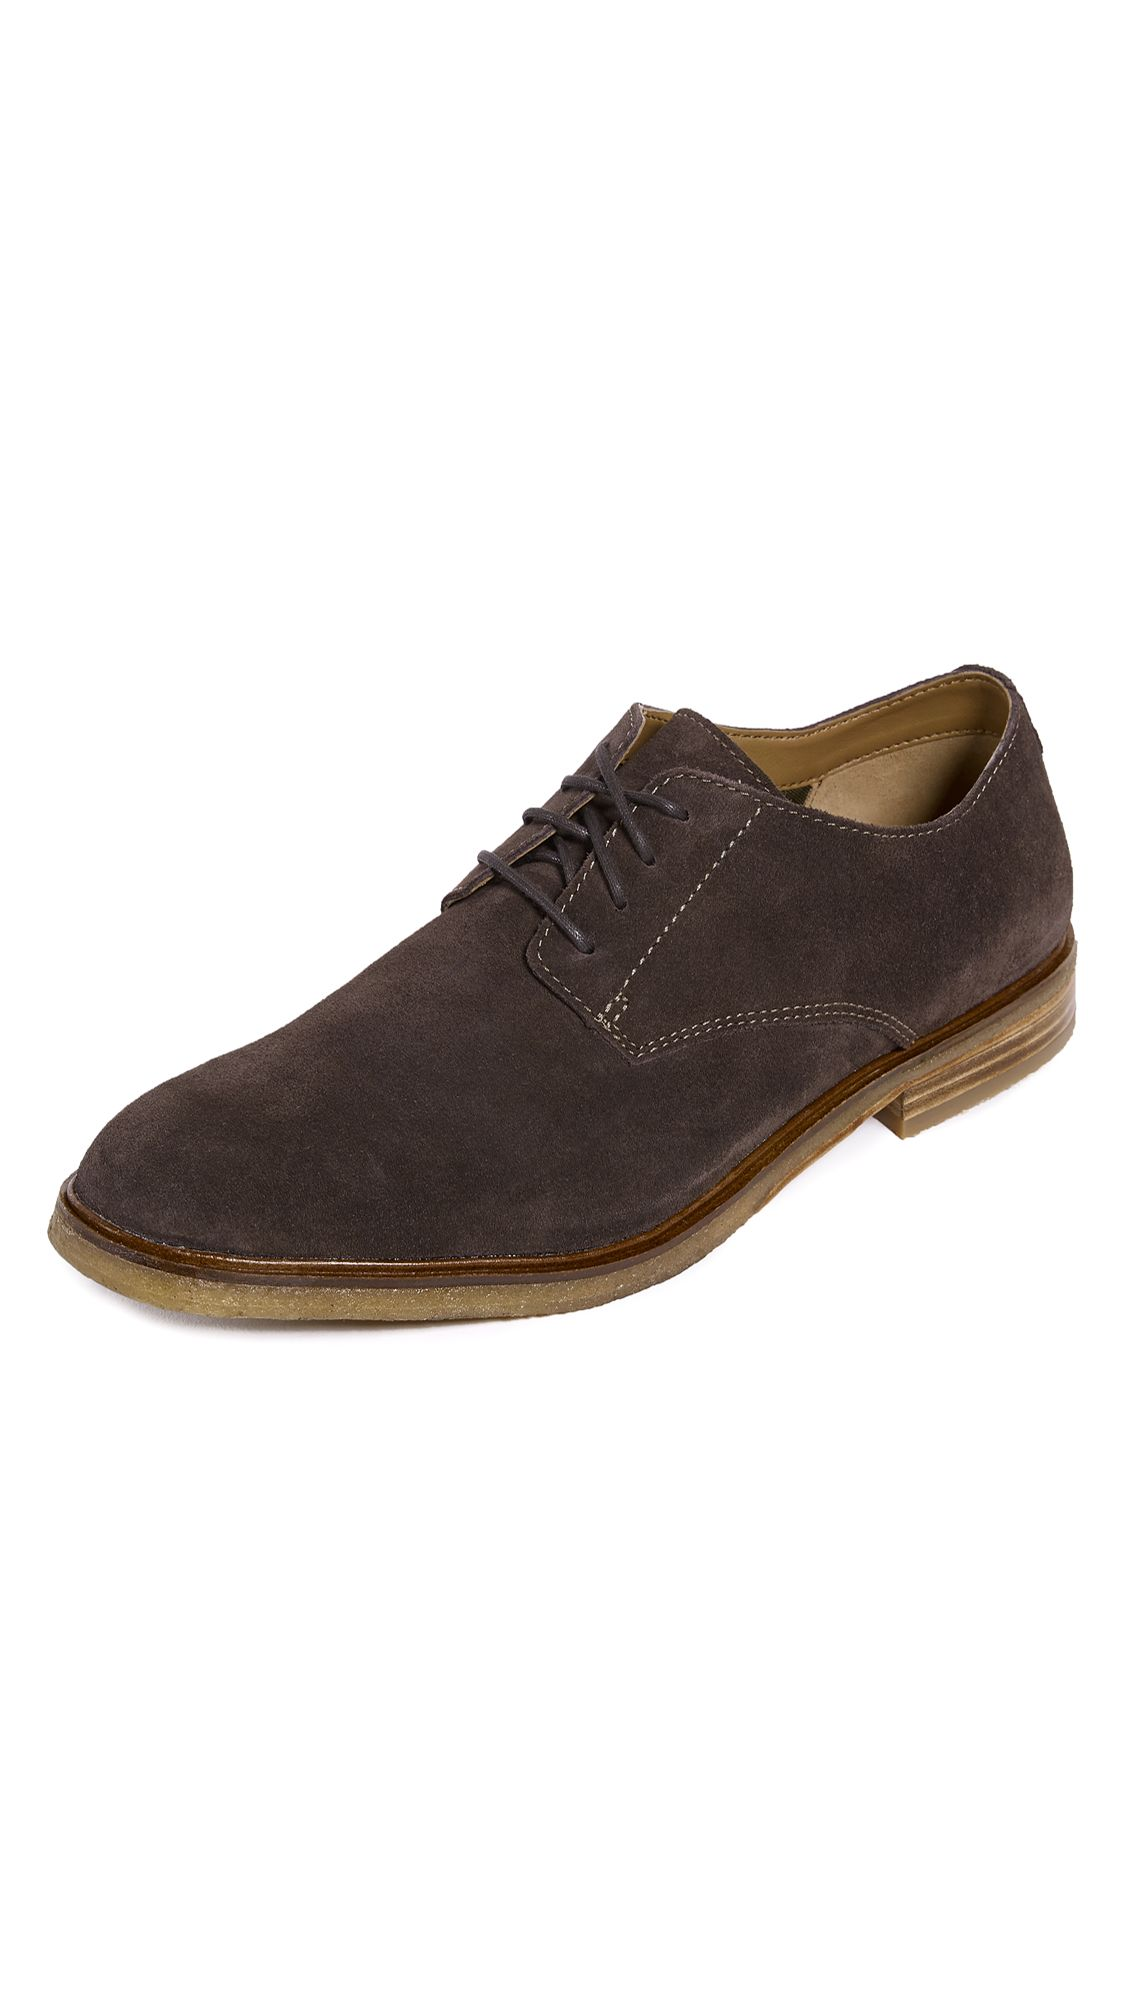 Stylish Womens Shoes Burgundy Clarks Haydn Pearl Casual Shoes